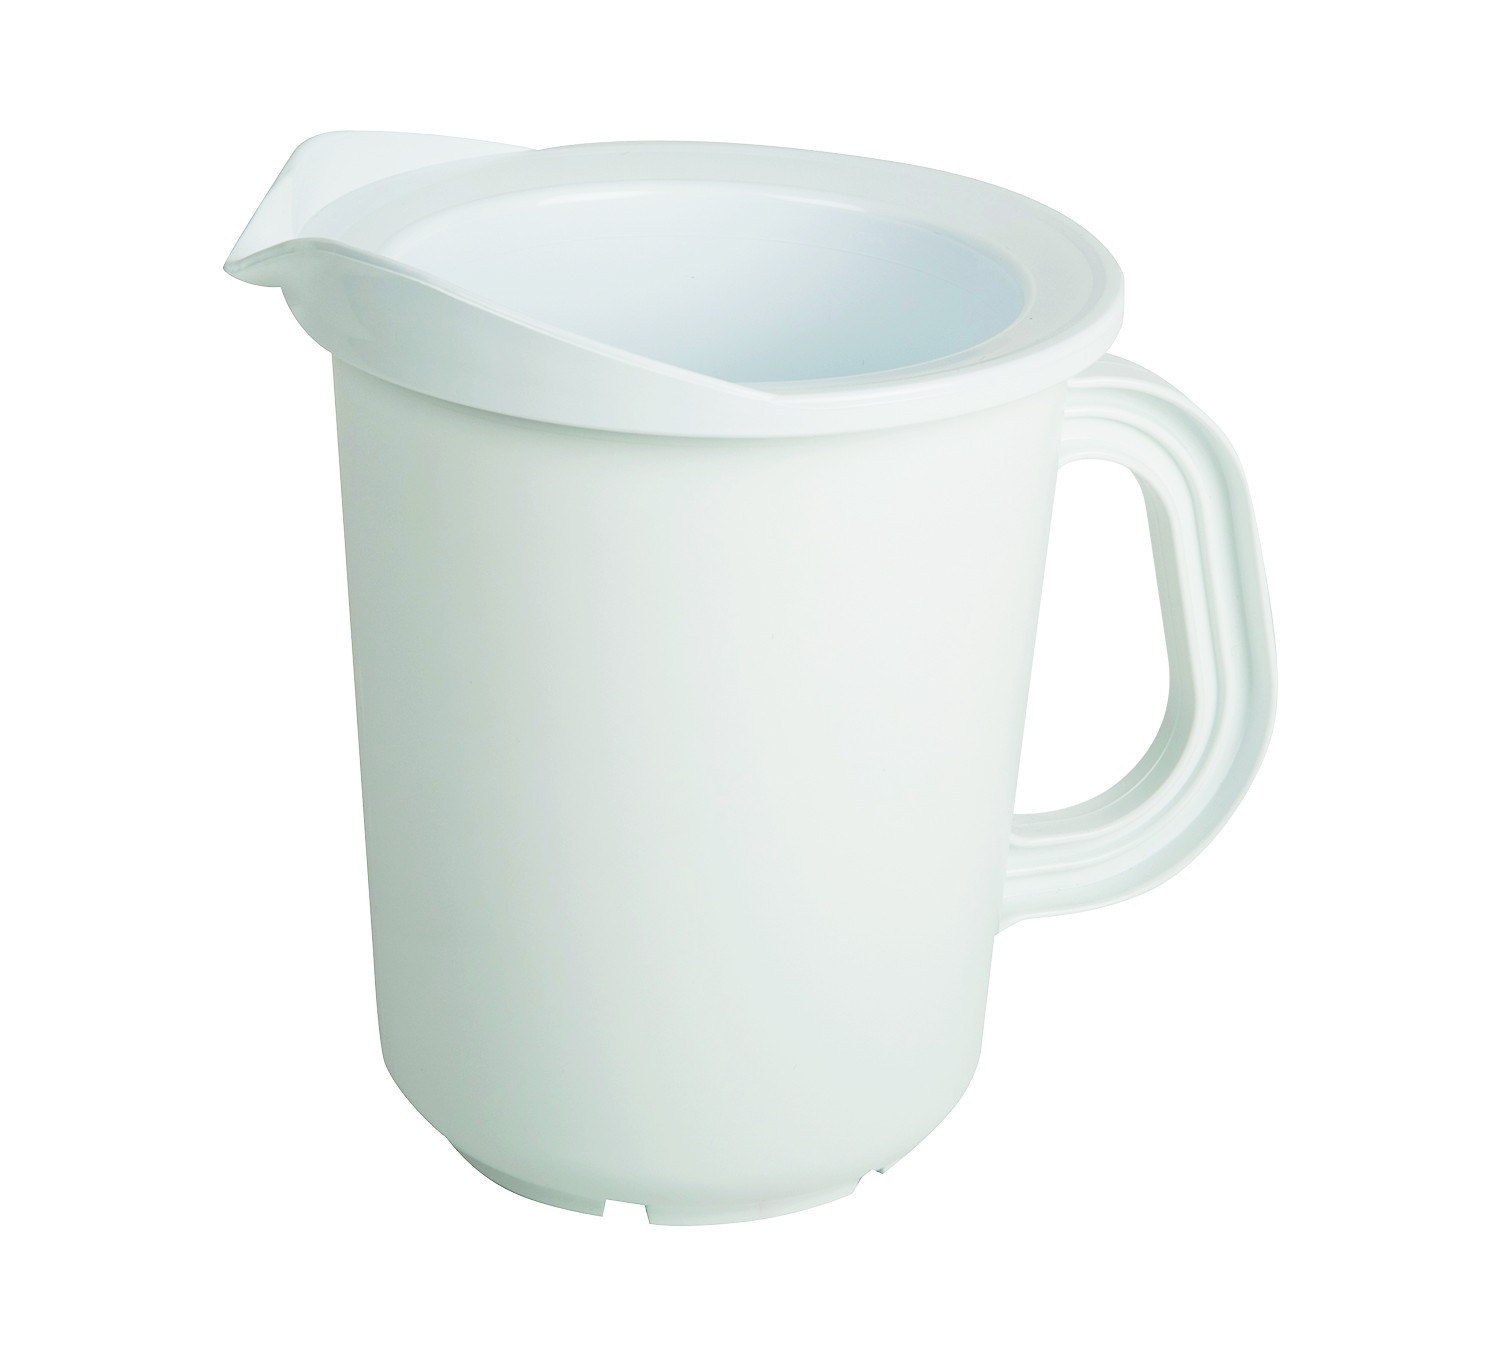 San Jamar CI7025 Chill-It Beverage Pitcher